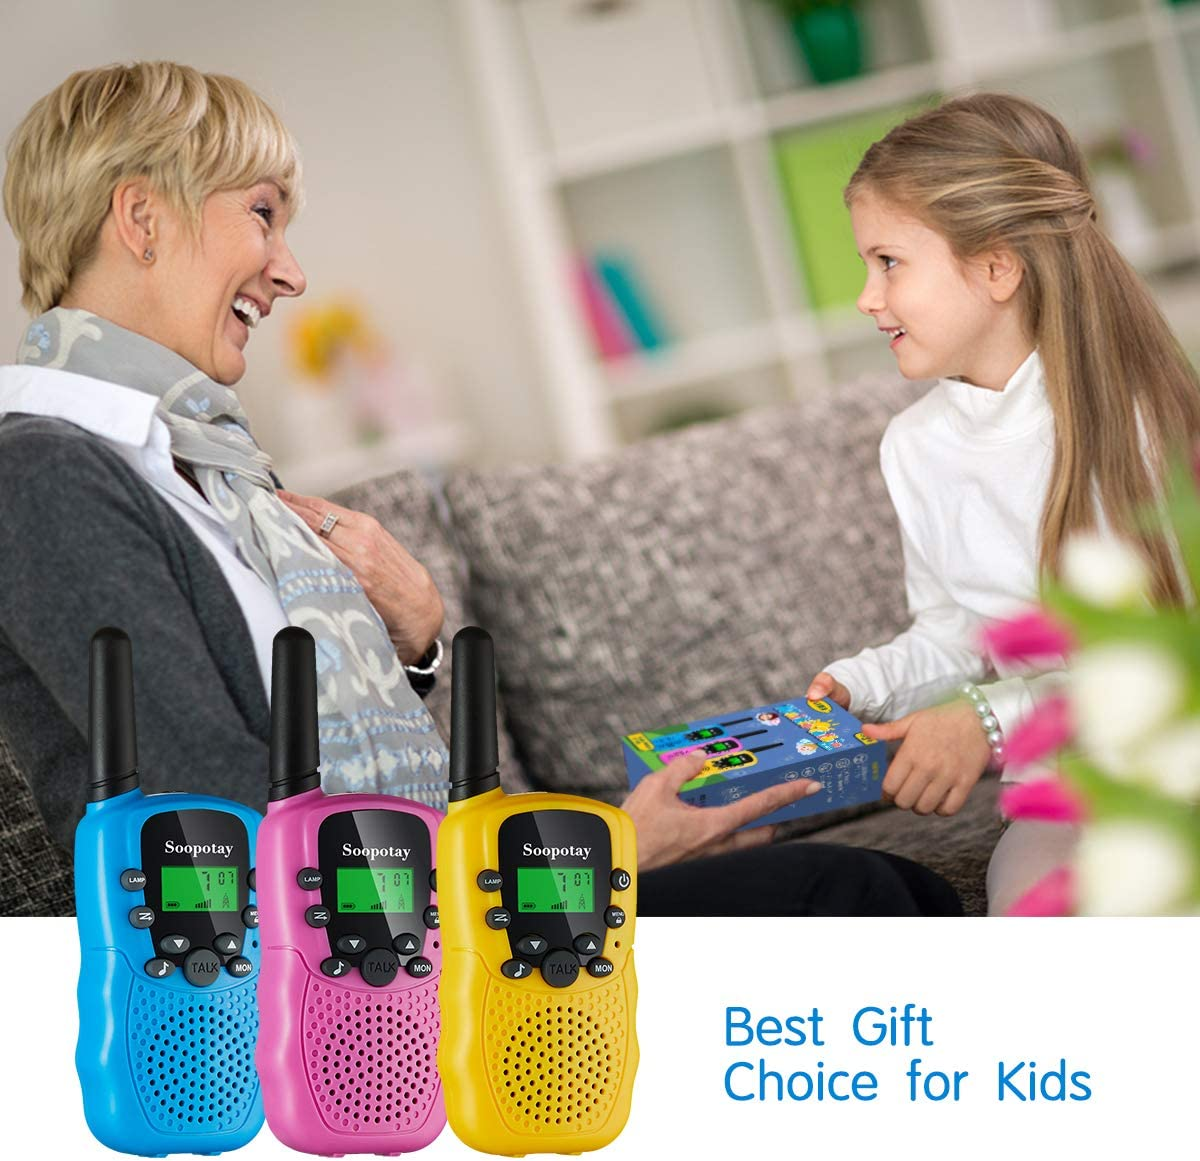 Kids Two-Way Radios Toys with LCD Flashlight and 22 Channels Long Distance Kids Walkie Talkies for 3-12 Years Old Boys SOOPOTAY Walkie Talkie for Kids 2 Pack Indoor and Outdoor Game